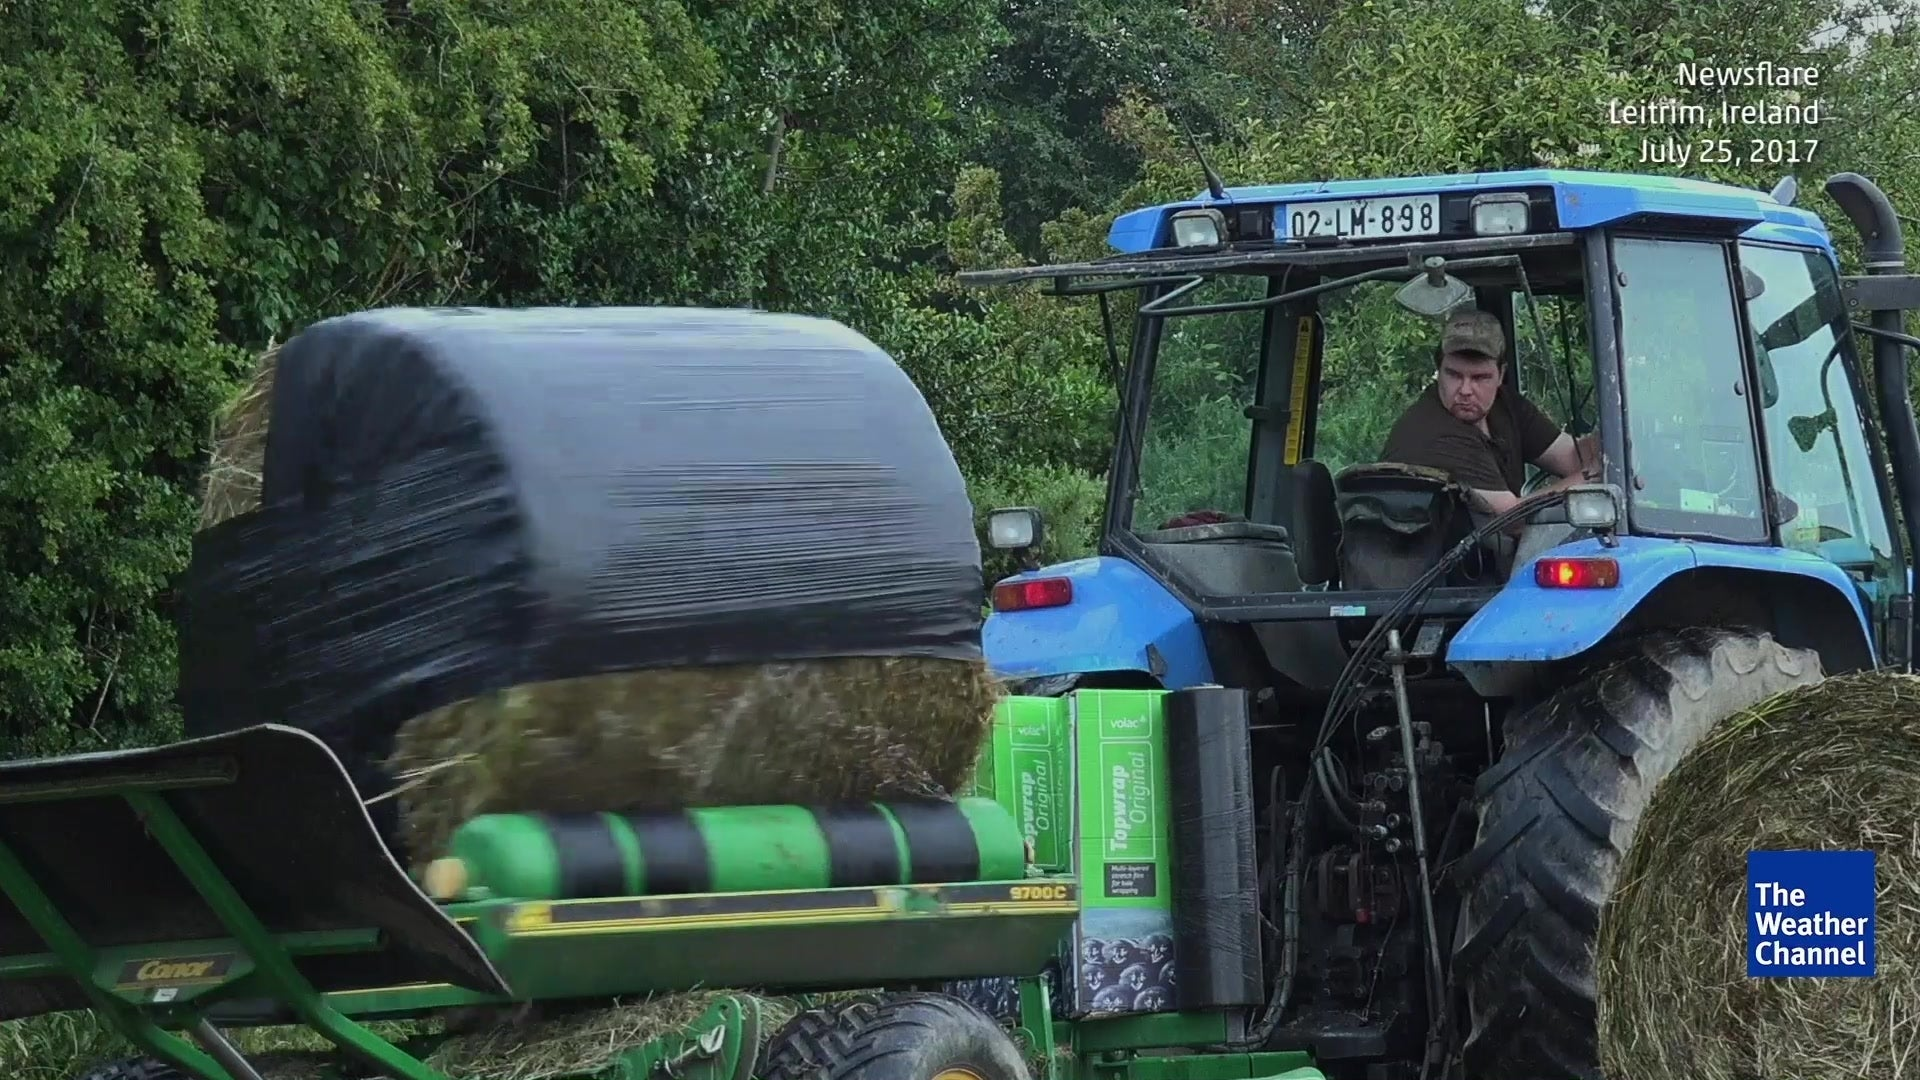 Bale Wrapping Machine Makes Quick Work of Farm Chore